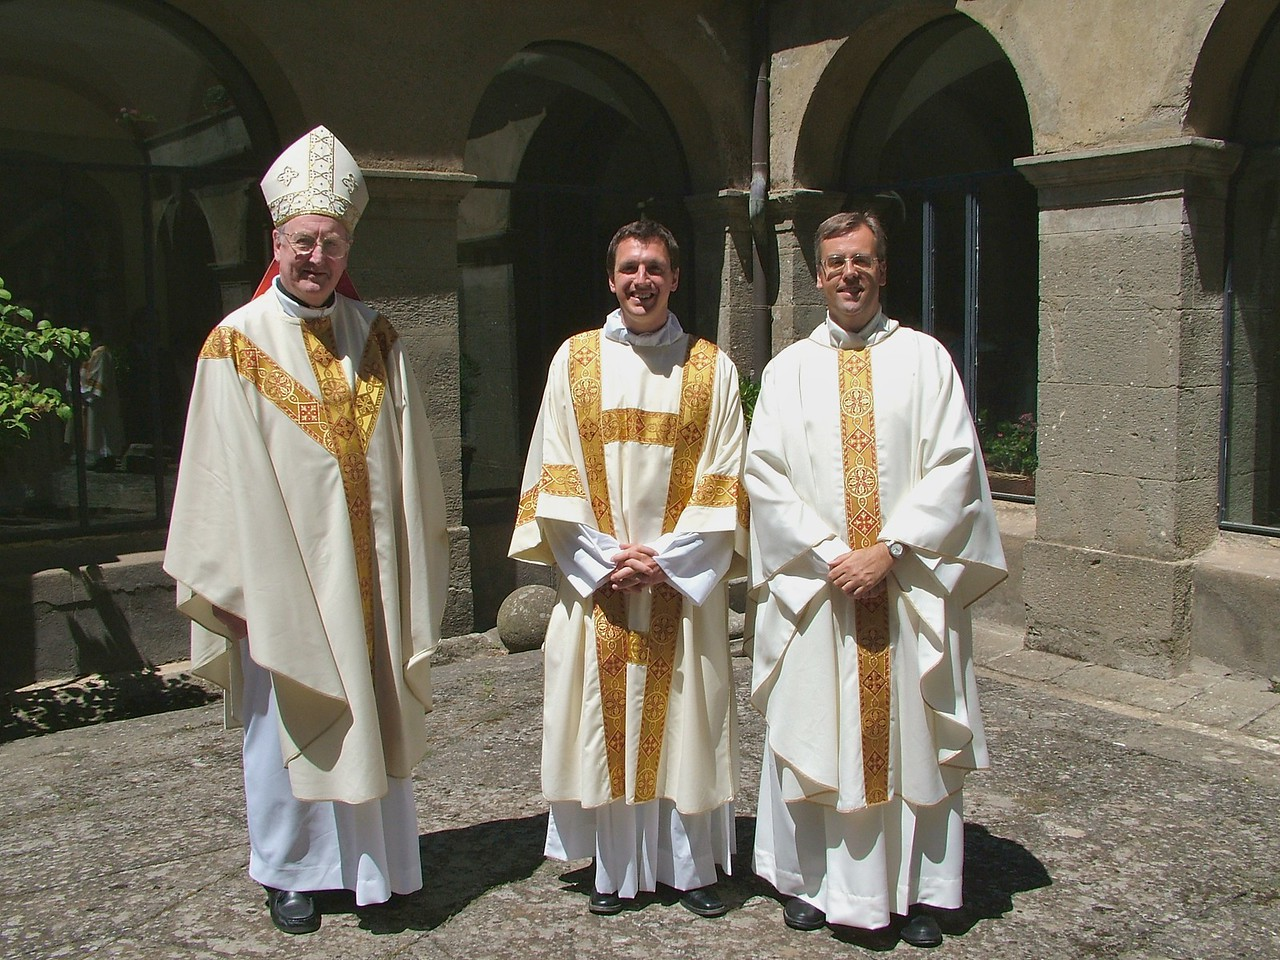 Bishop Brain, John and the Rector